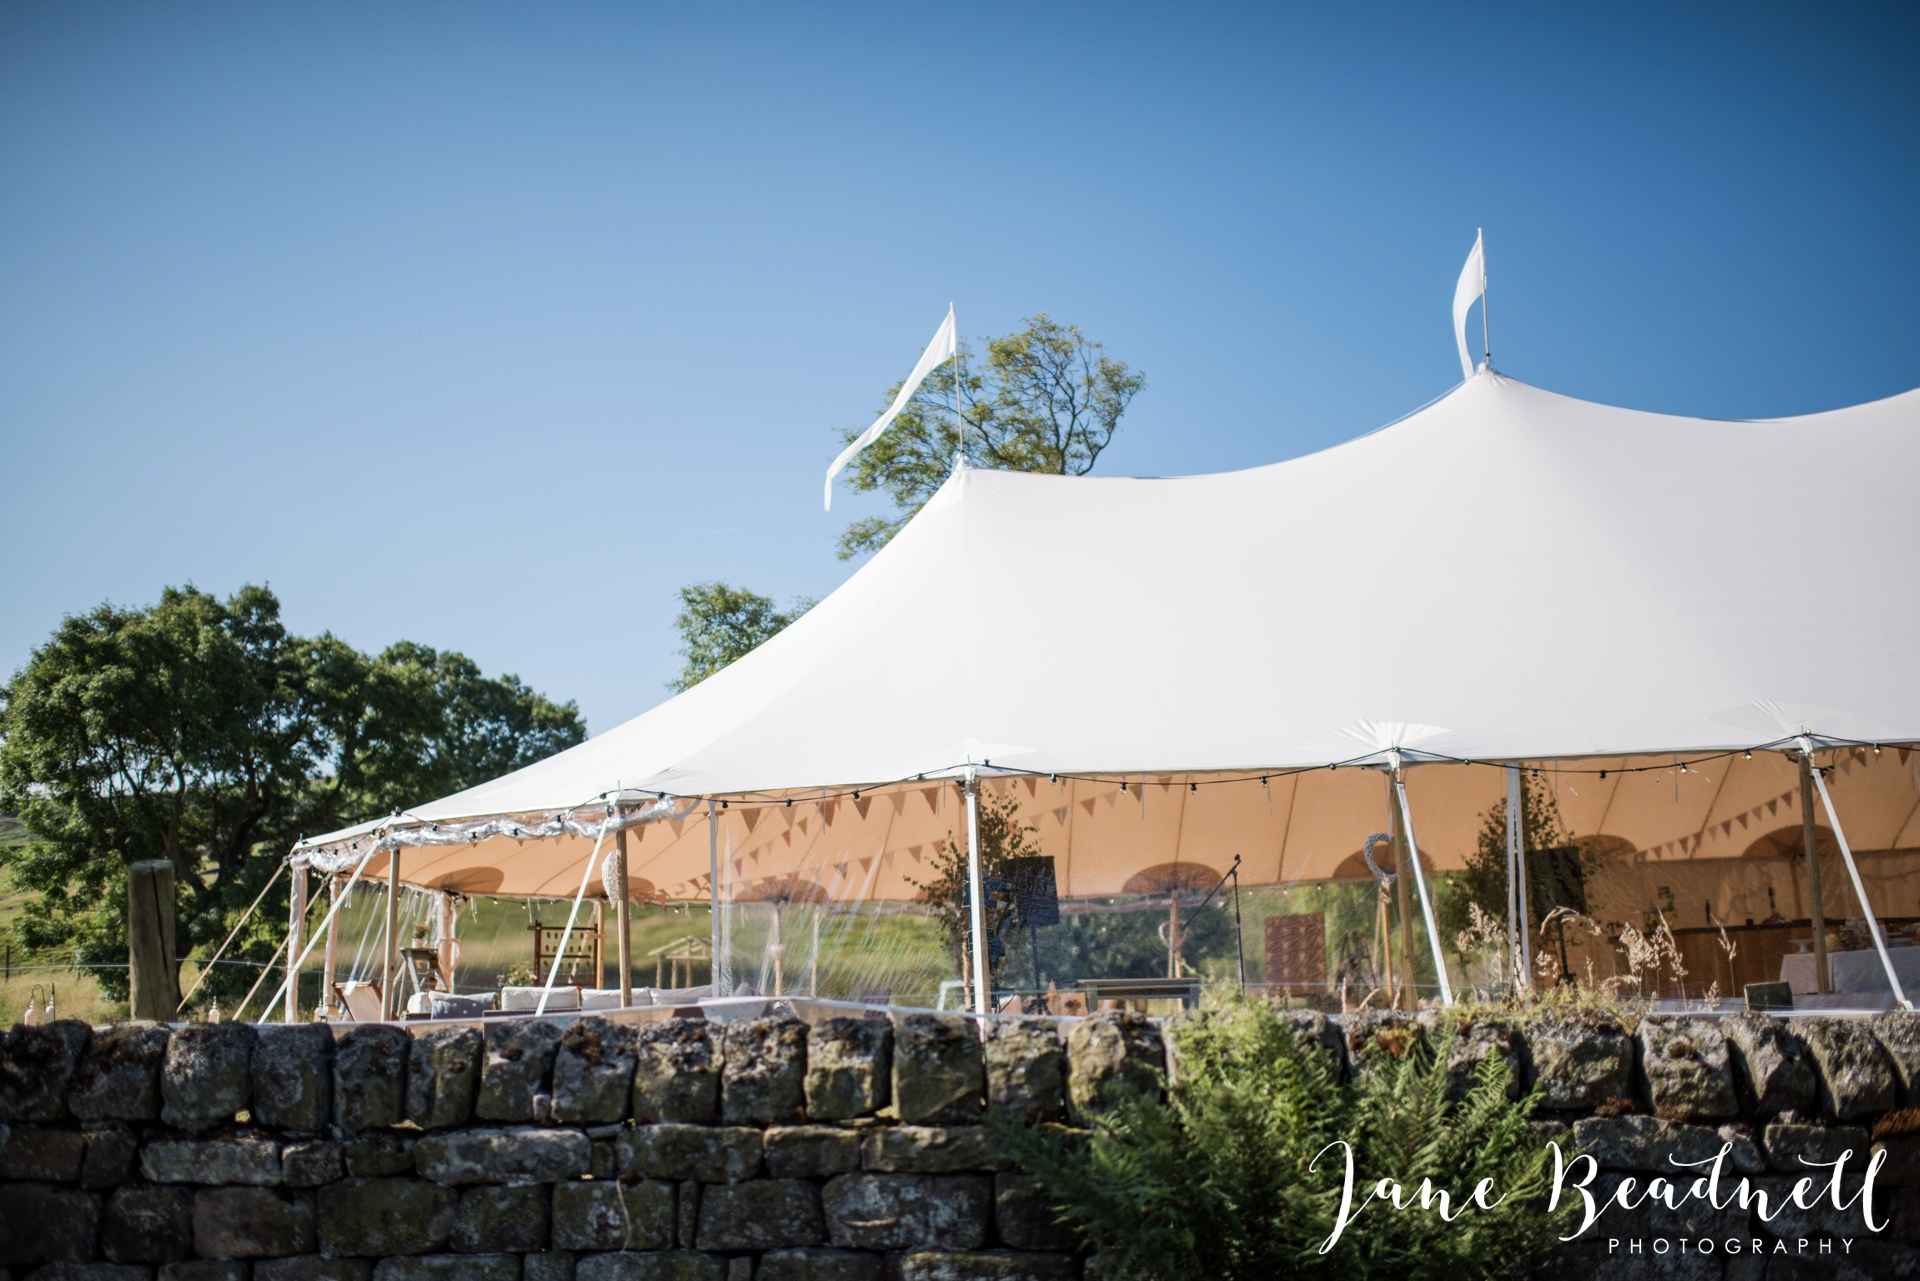 Jane Beadnell fine art wedding photographer Sperry Tent wedding Ilkley_0001